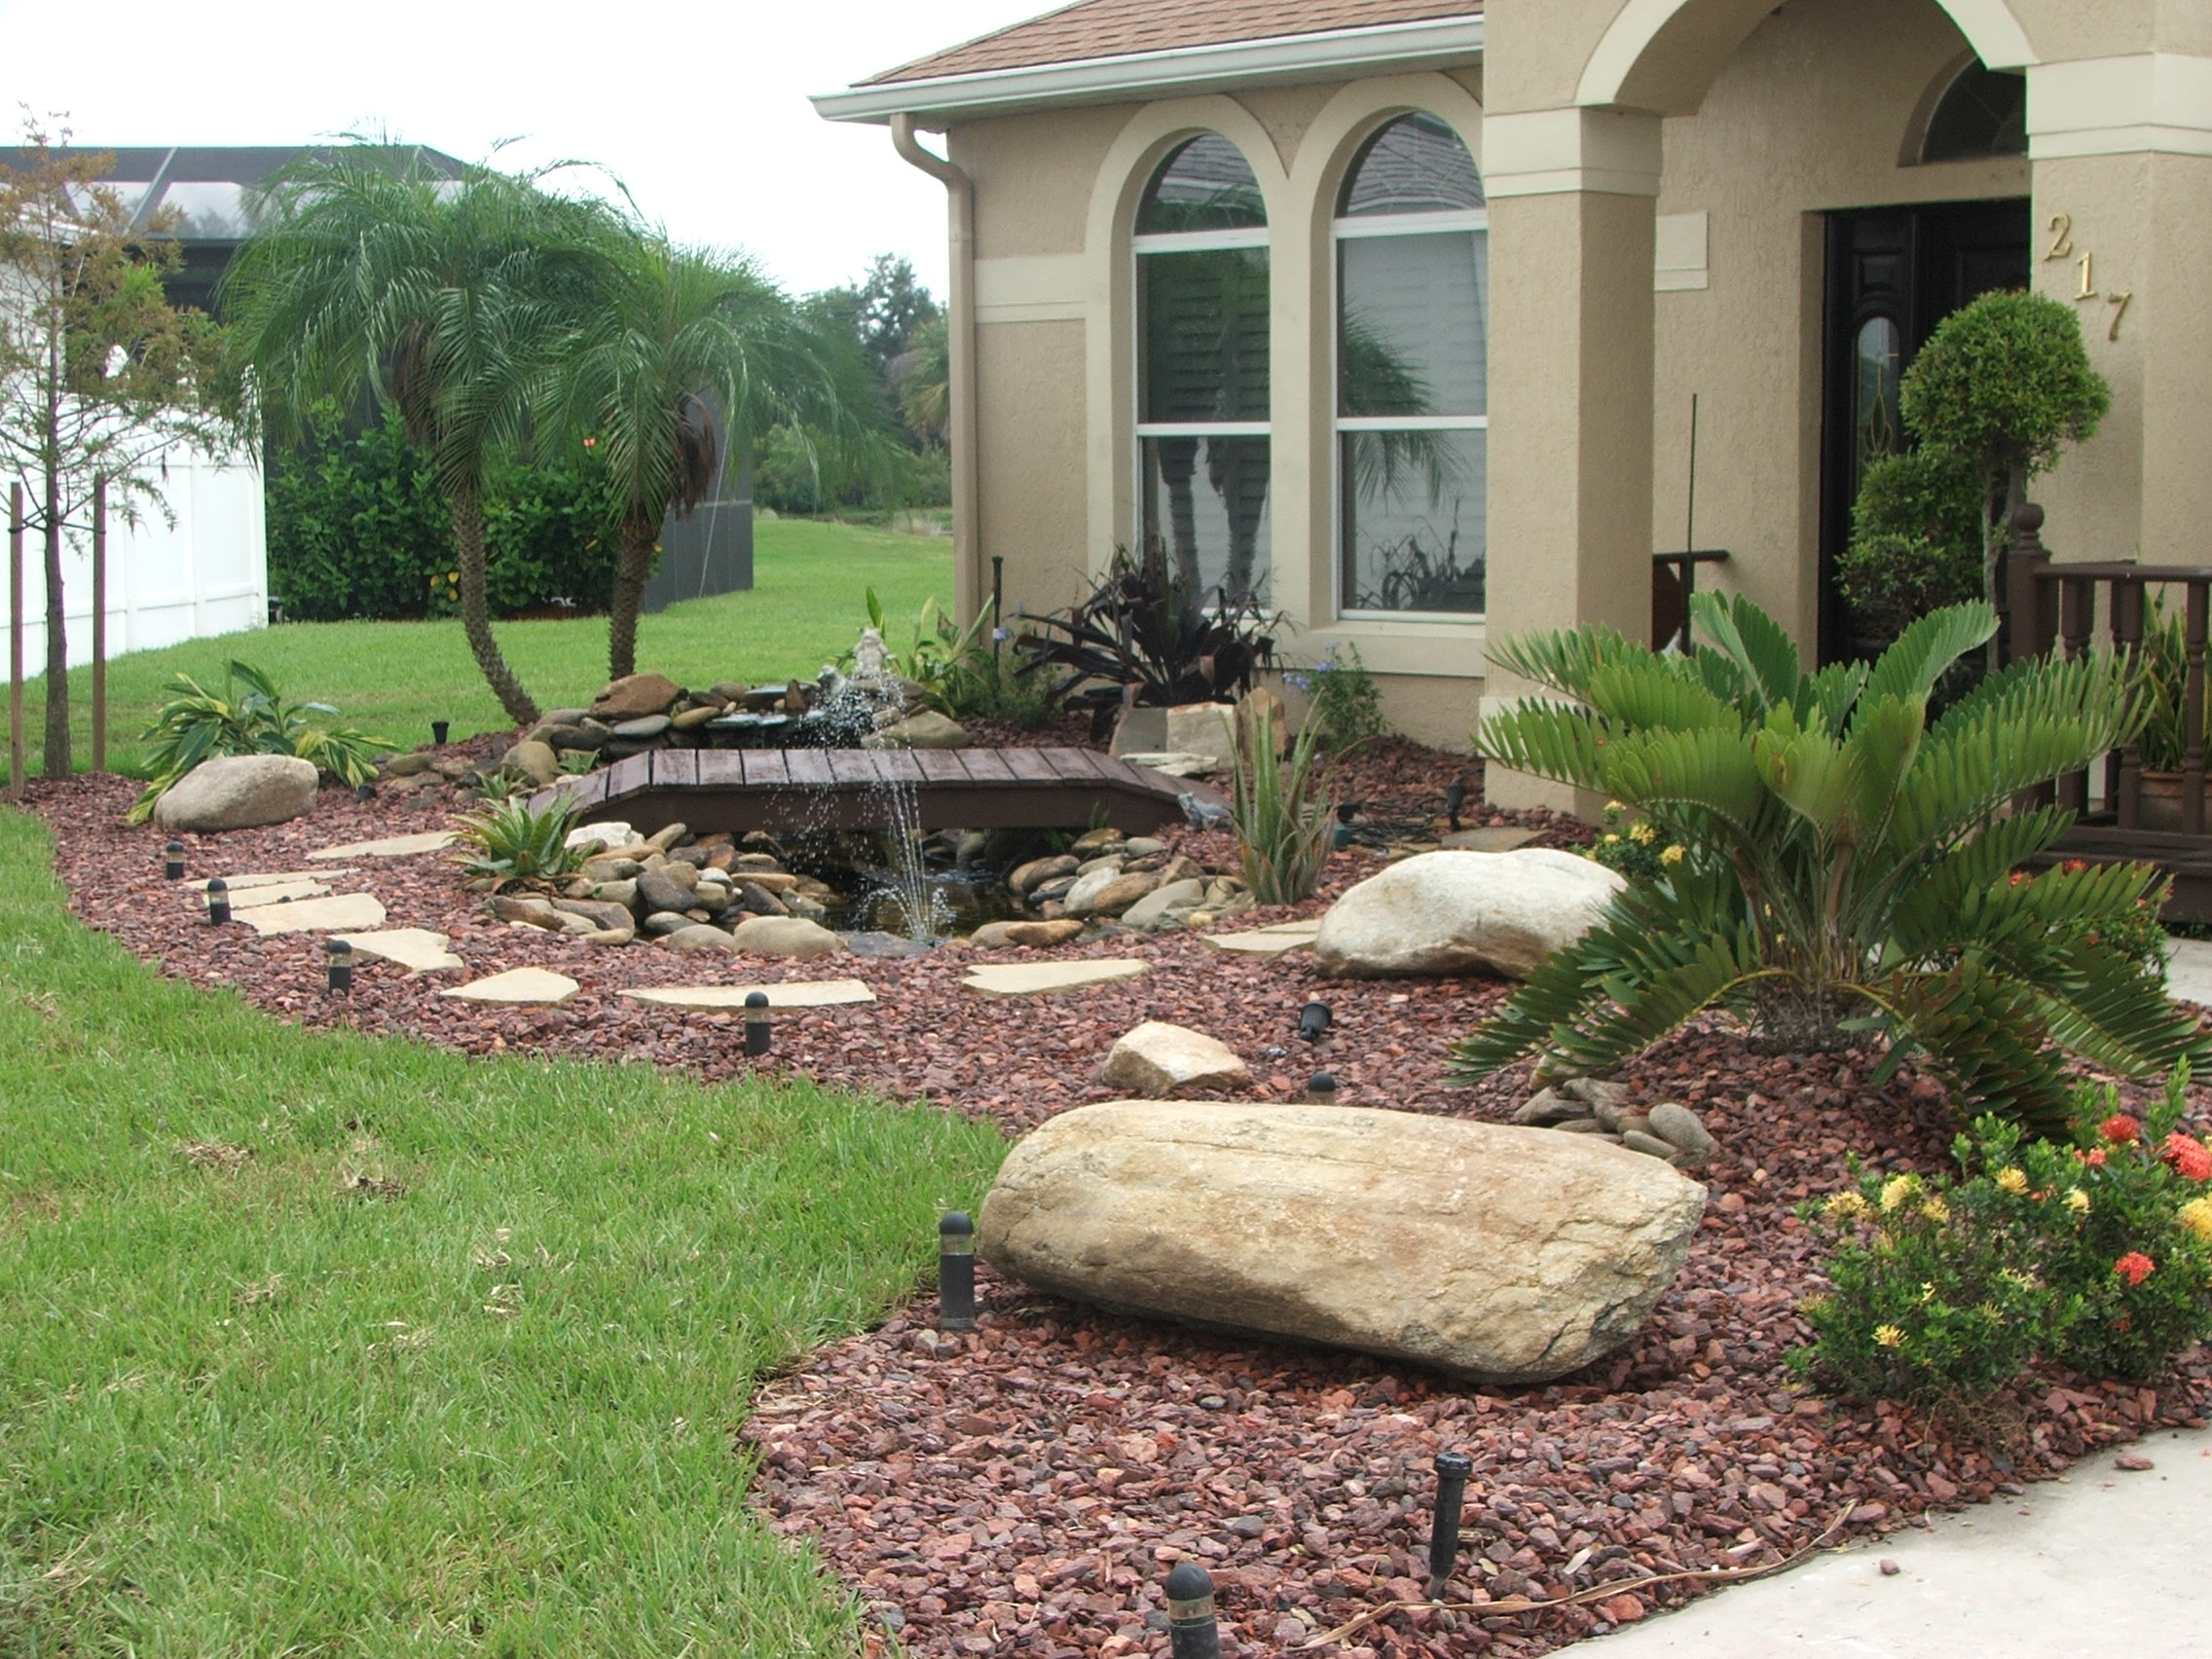 Landscaping rocks pool landscaping with river rocks for Front garden landscaping